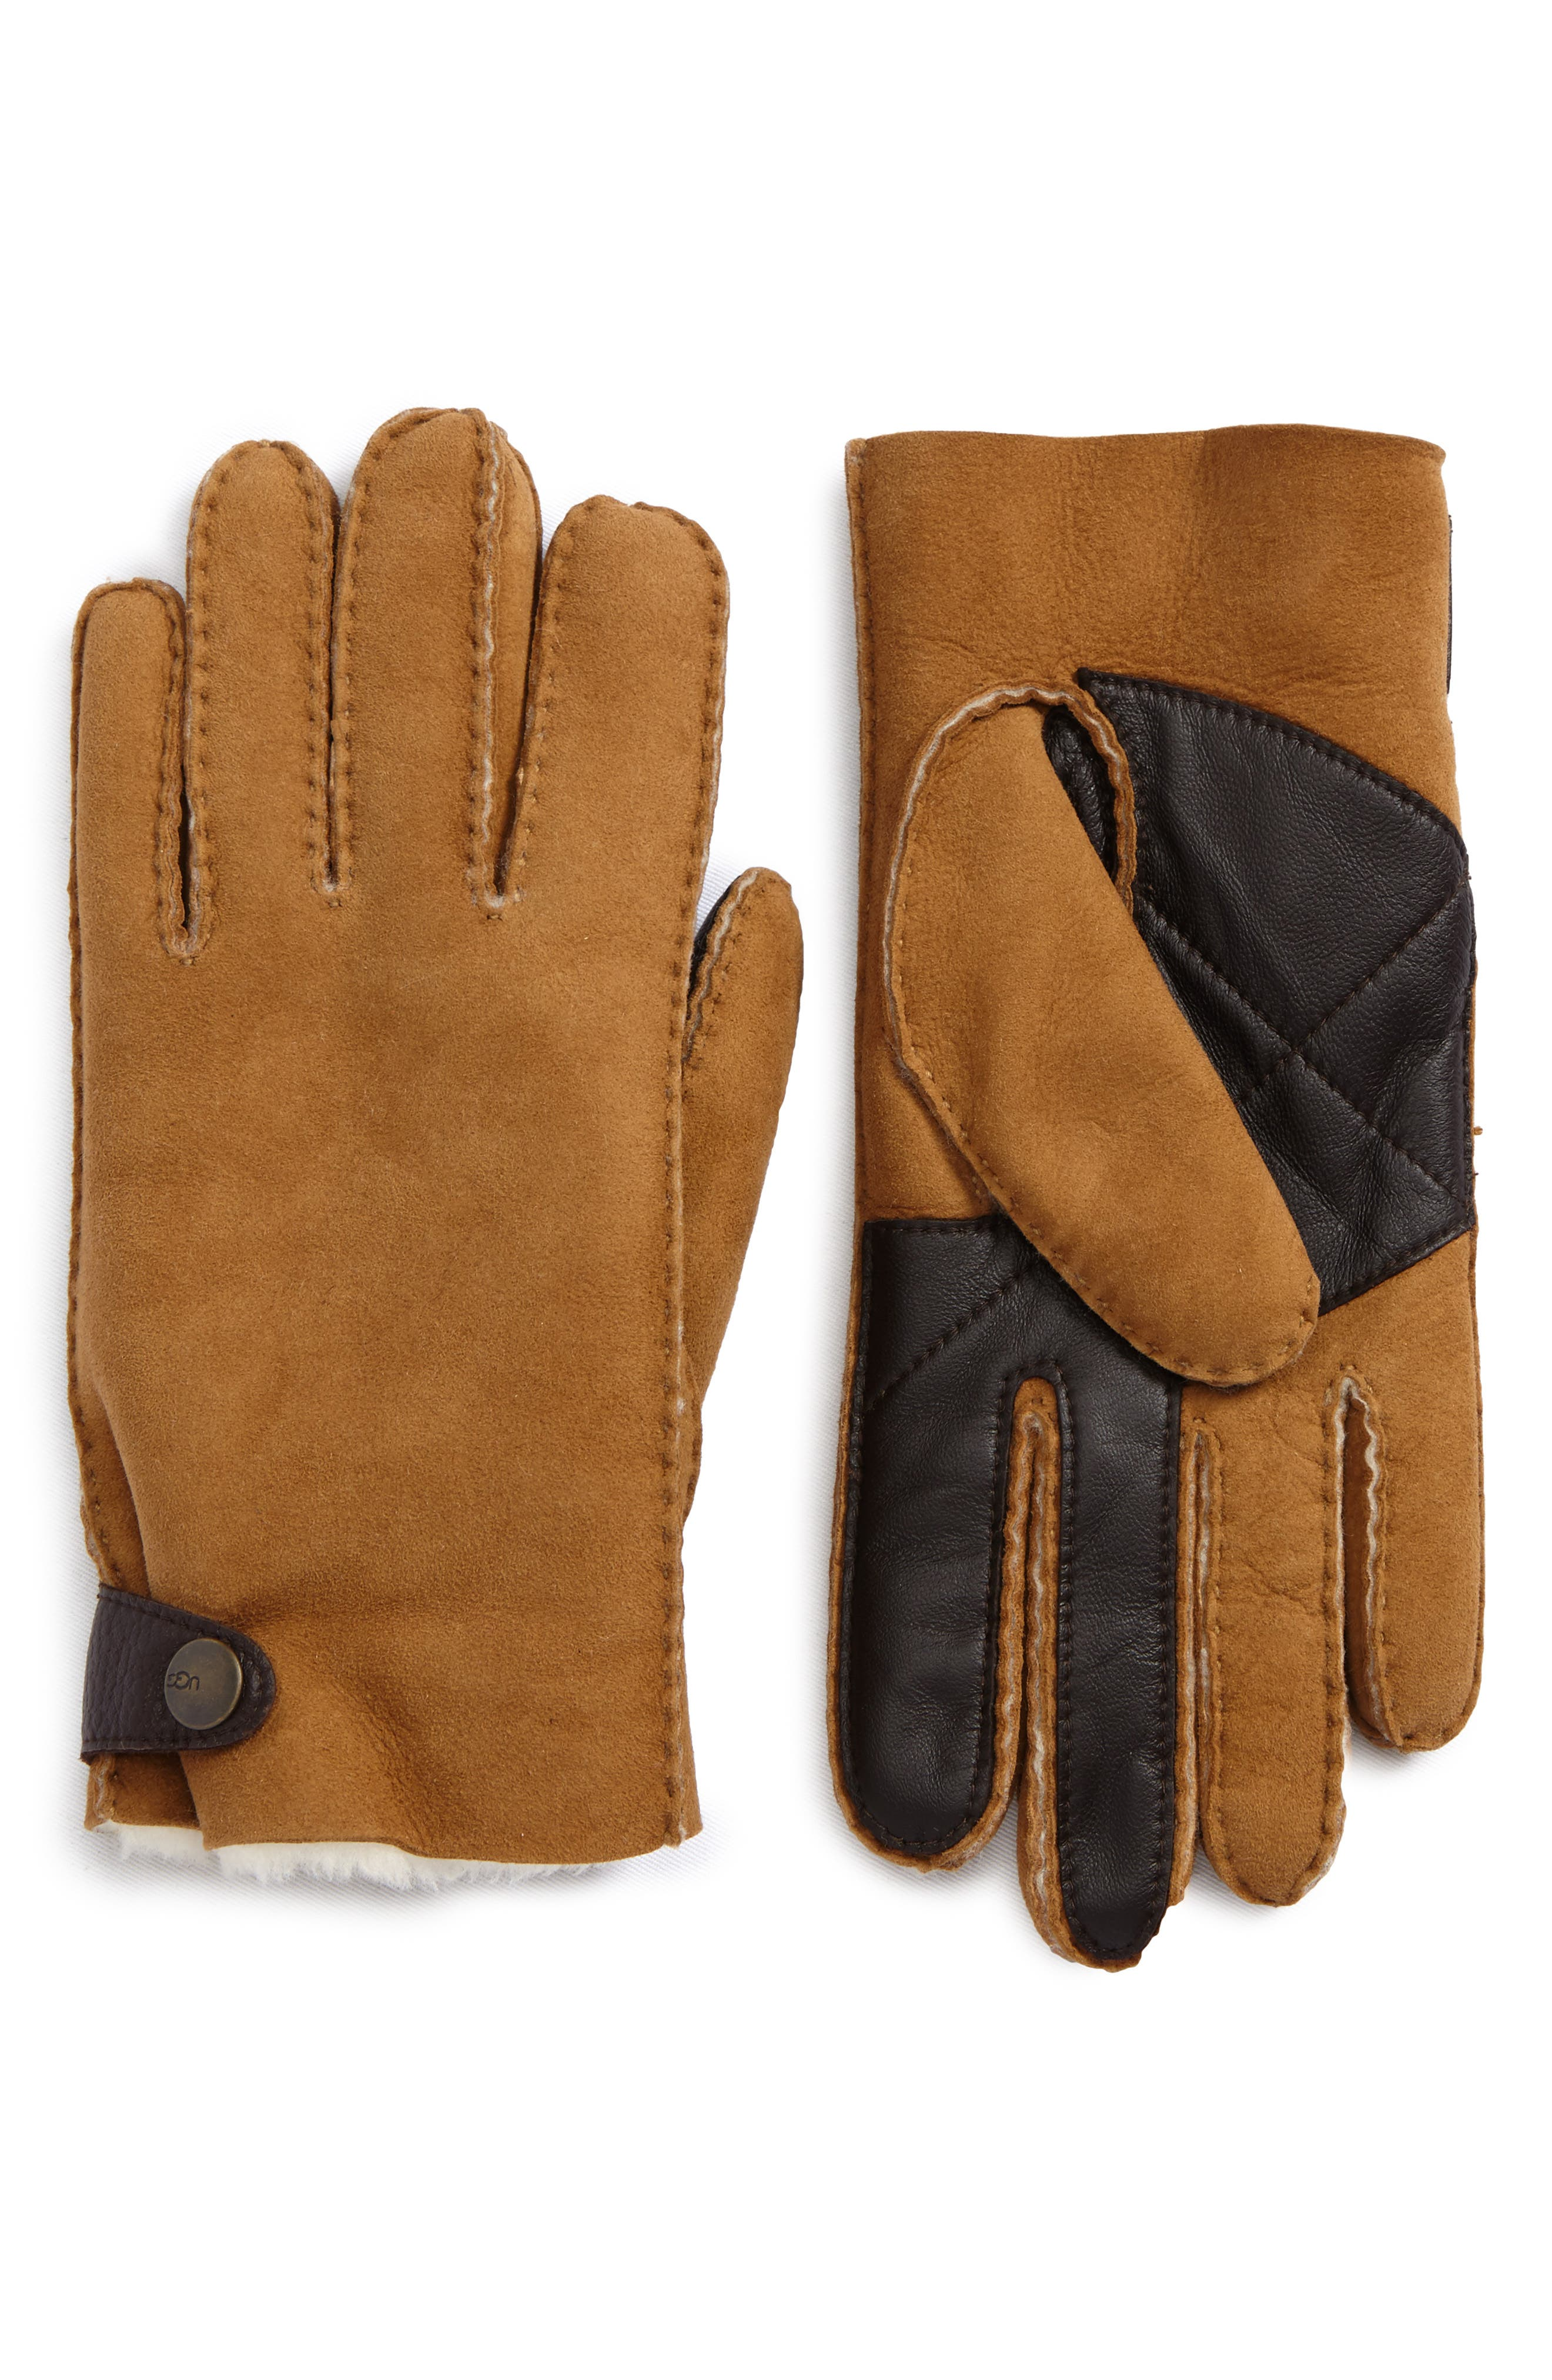 Shearling Tech Gloves,                         Main,                         color, Chestnut